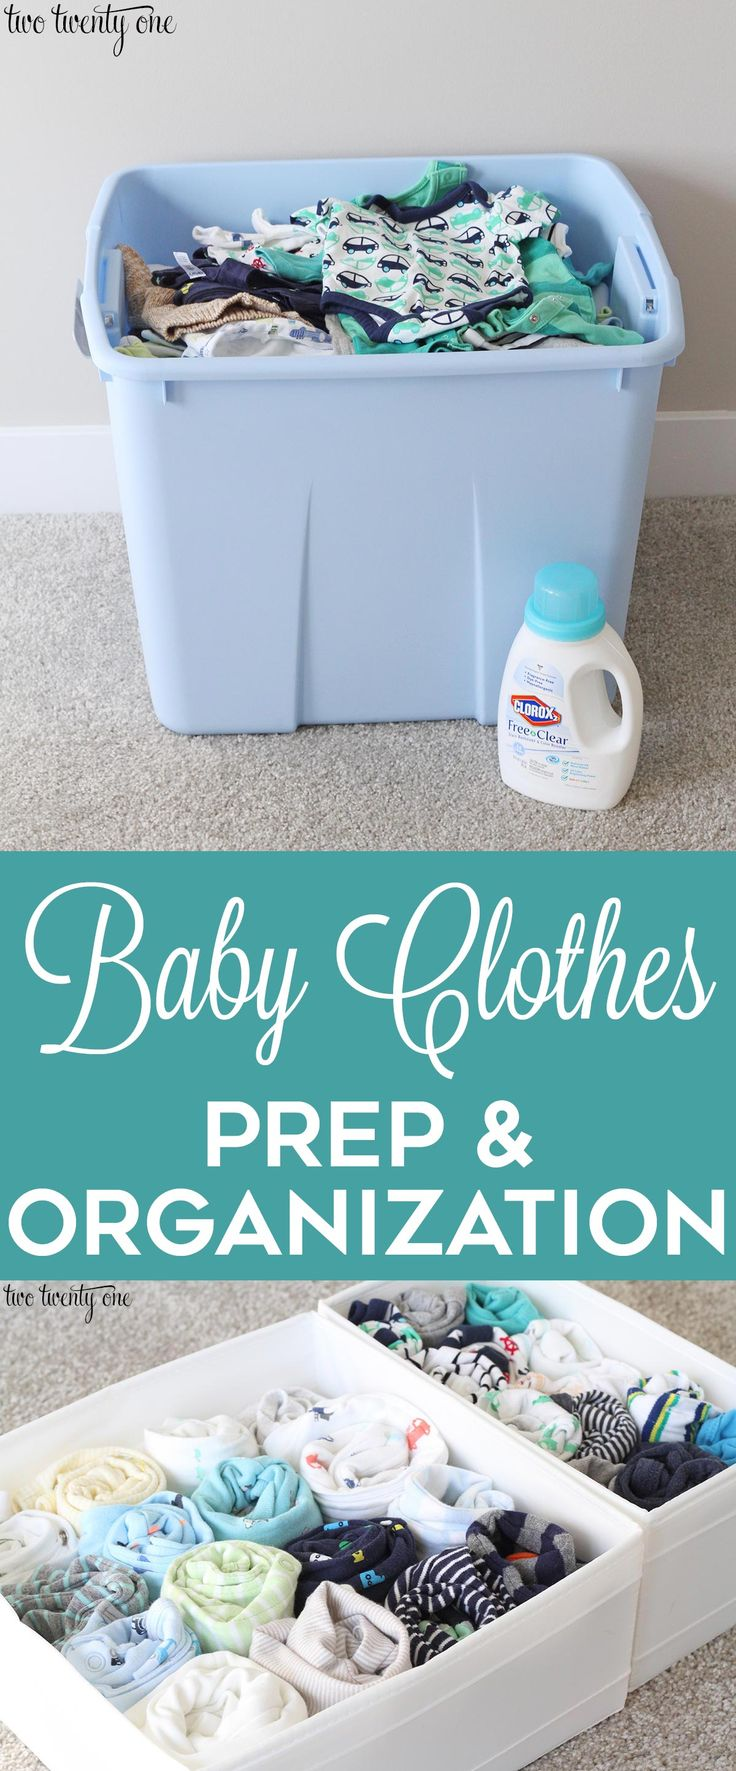 Baby clothes prep and organization! Tips and tricks for cleaning previously-worn...